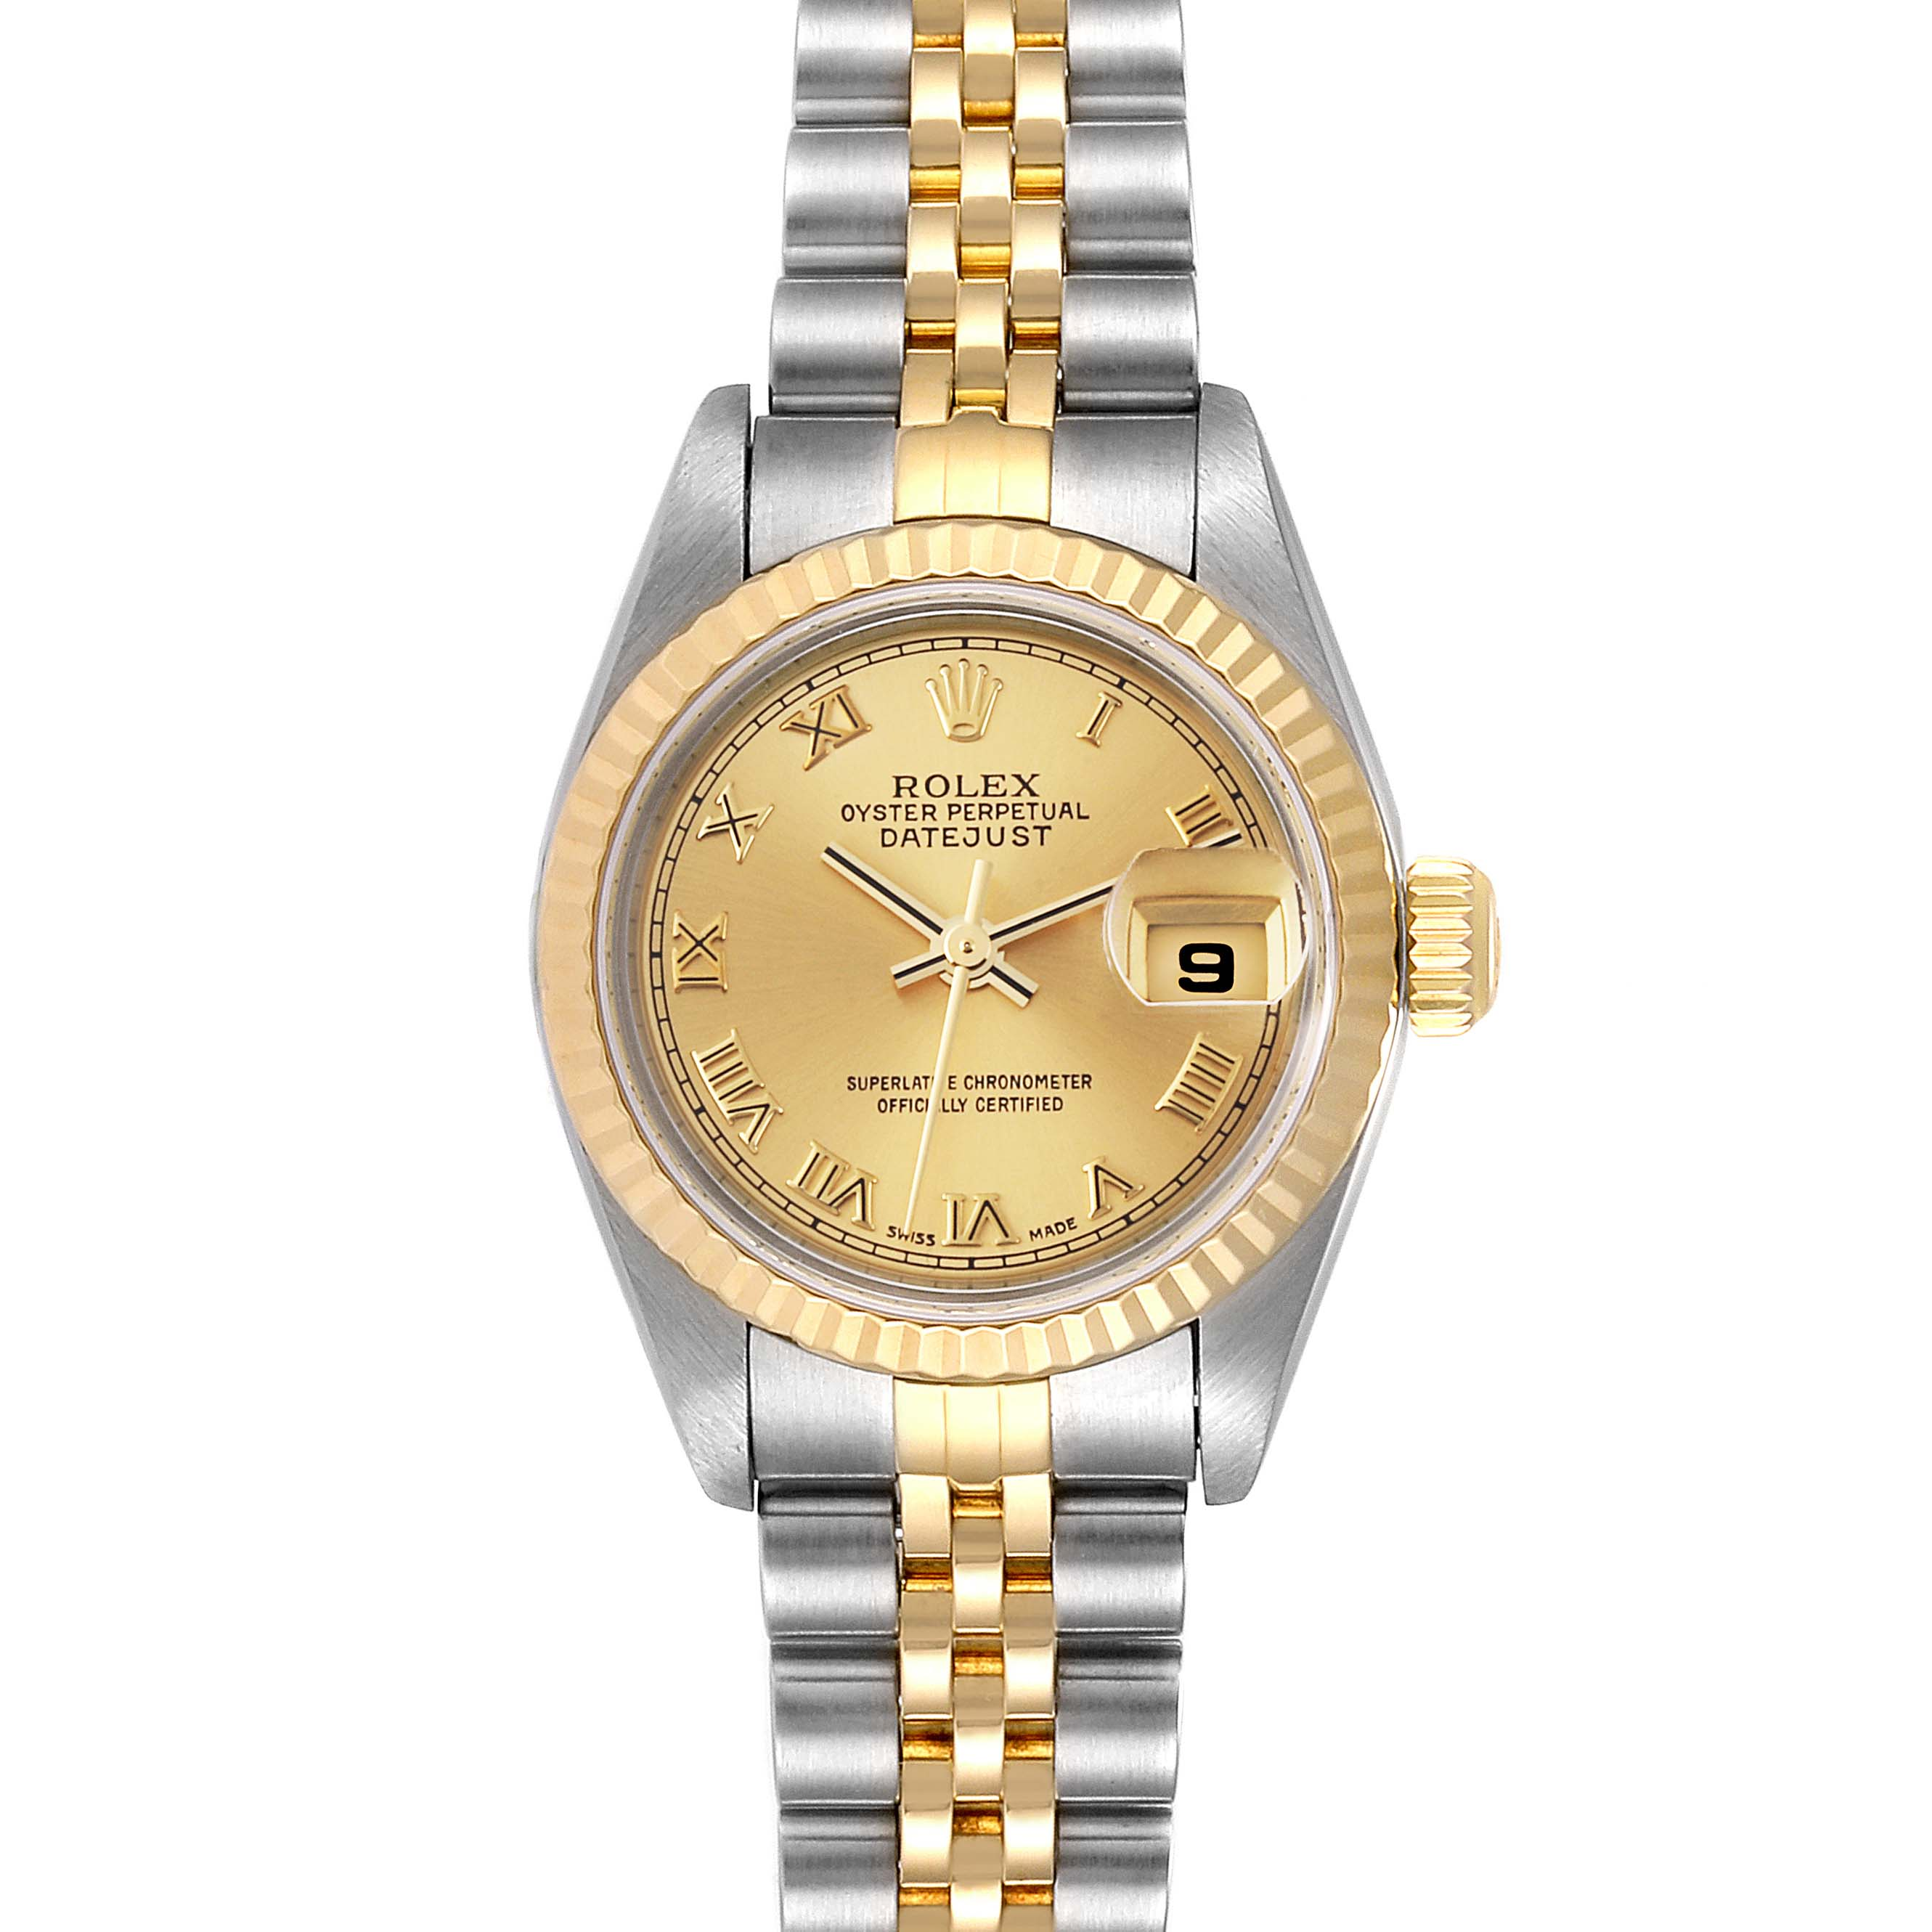 Rolex Datejust Steel 18K Yellow Gold Fluted Bezel Ladies Watch 79173